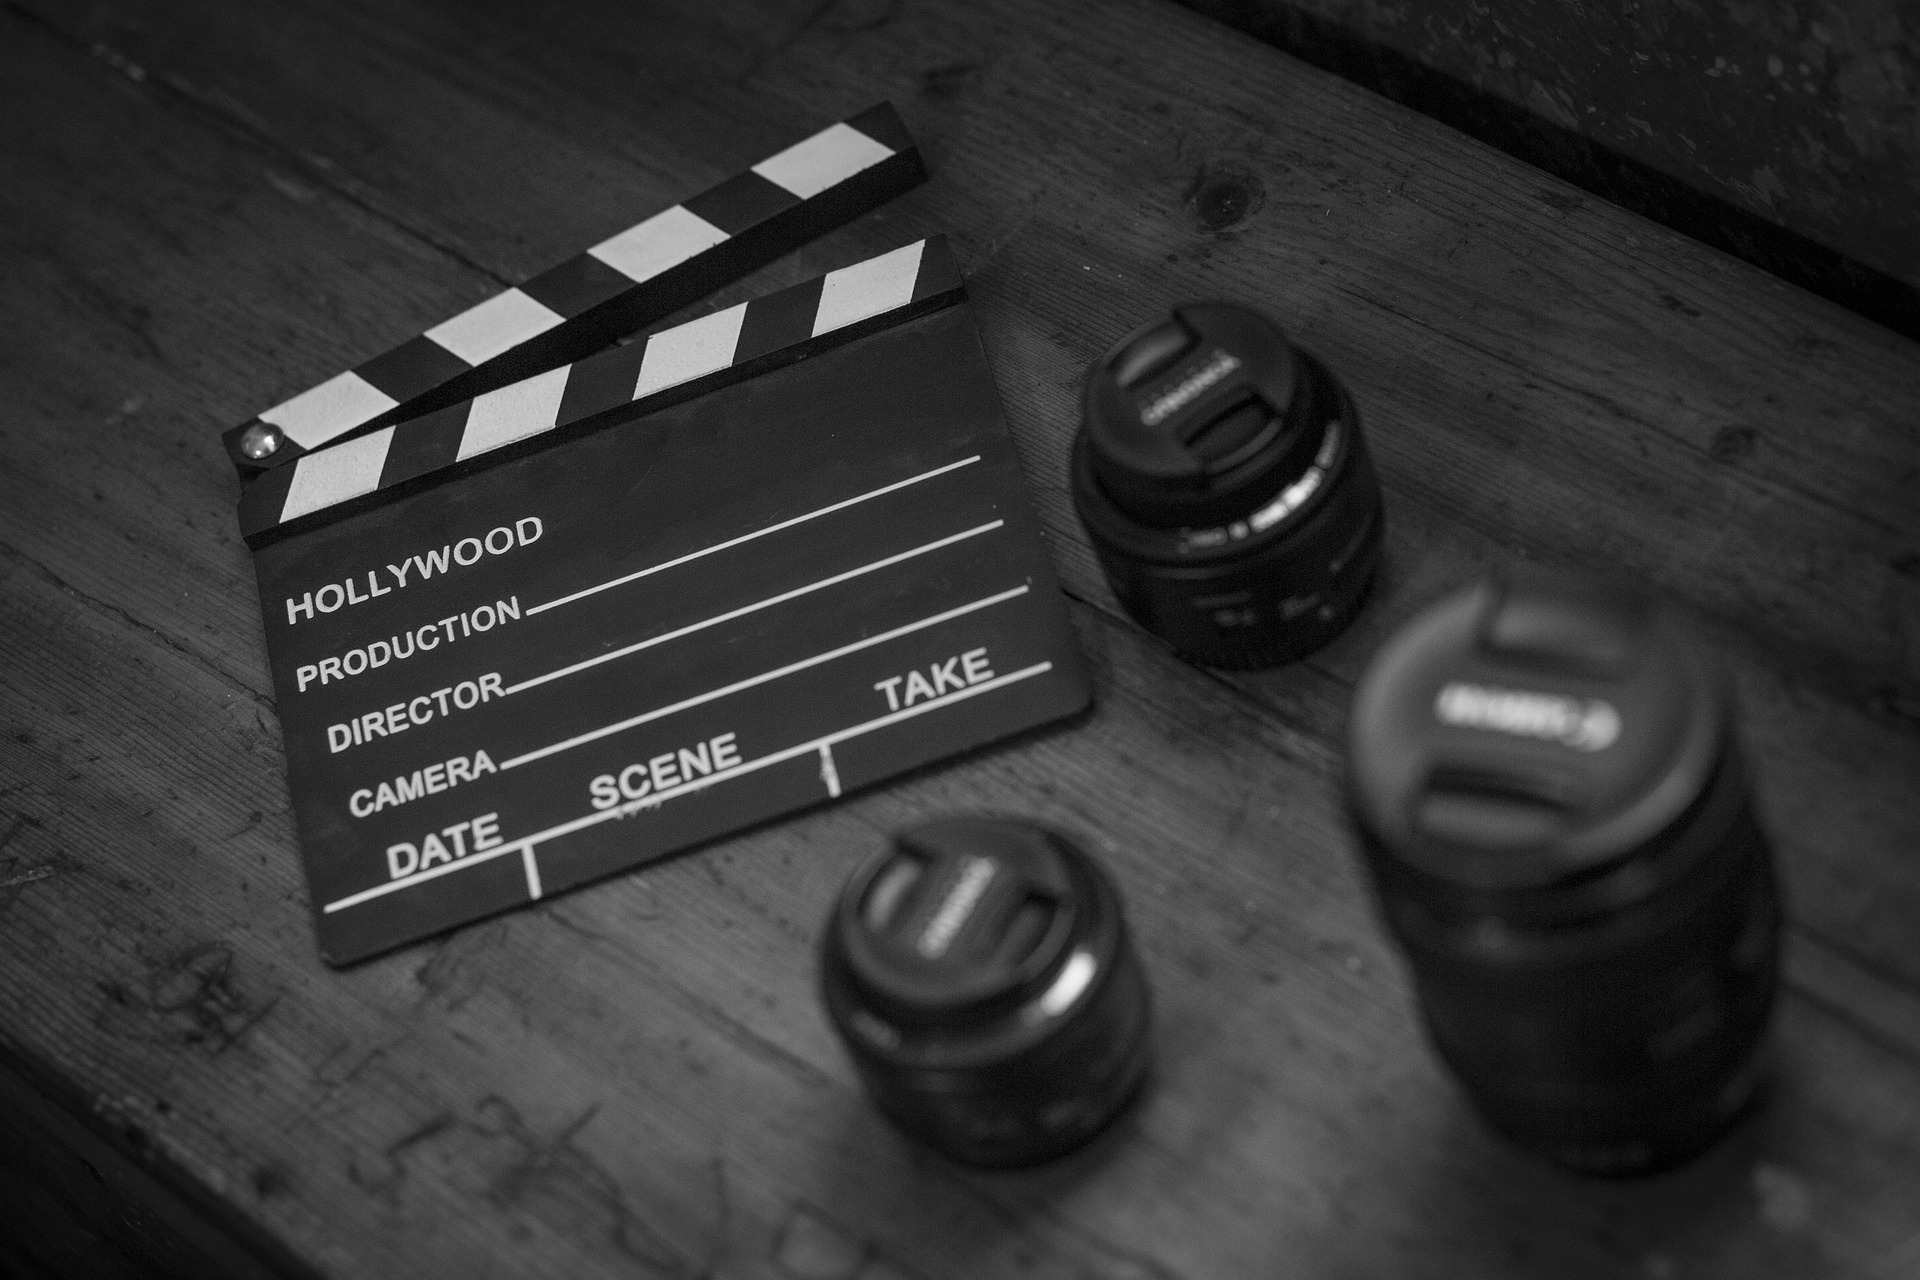 Video production: Clapperboard and camera lenses